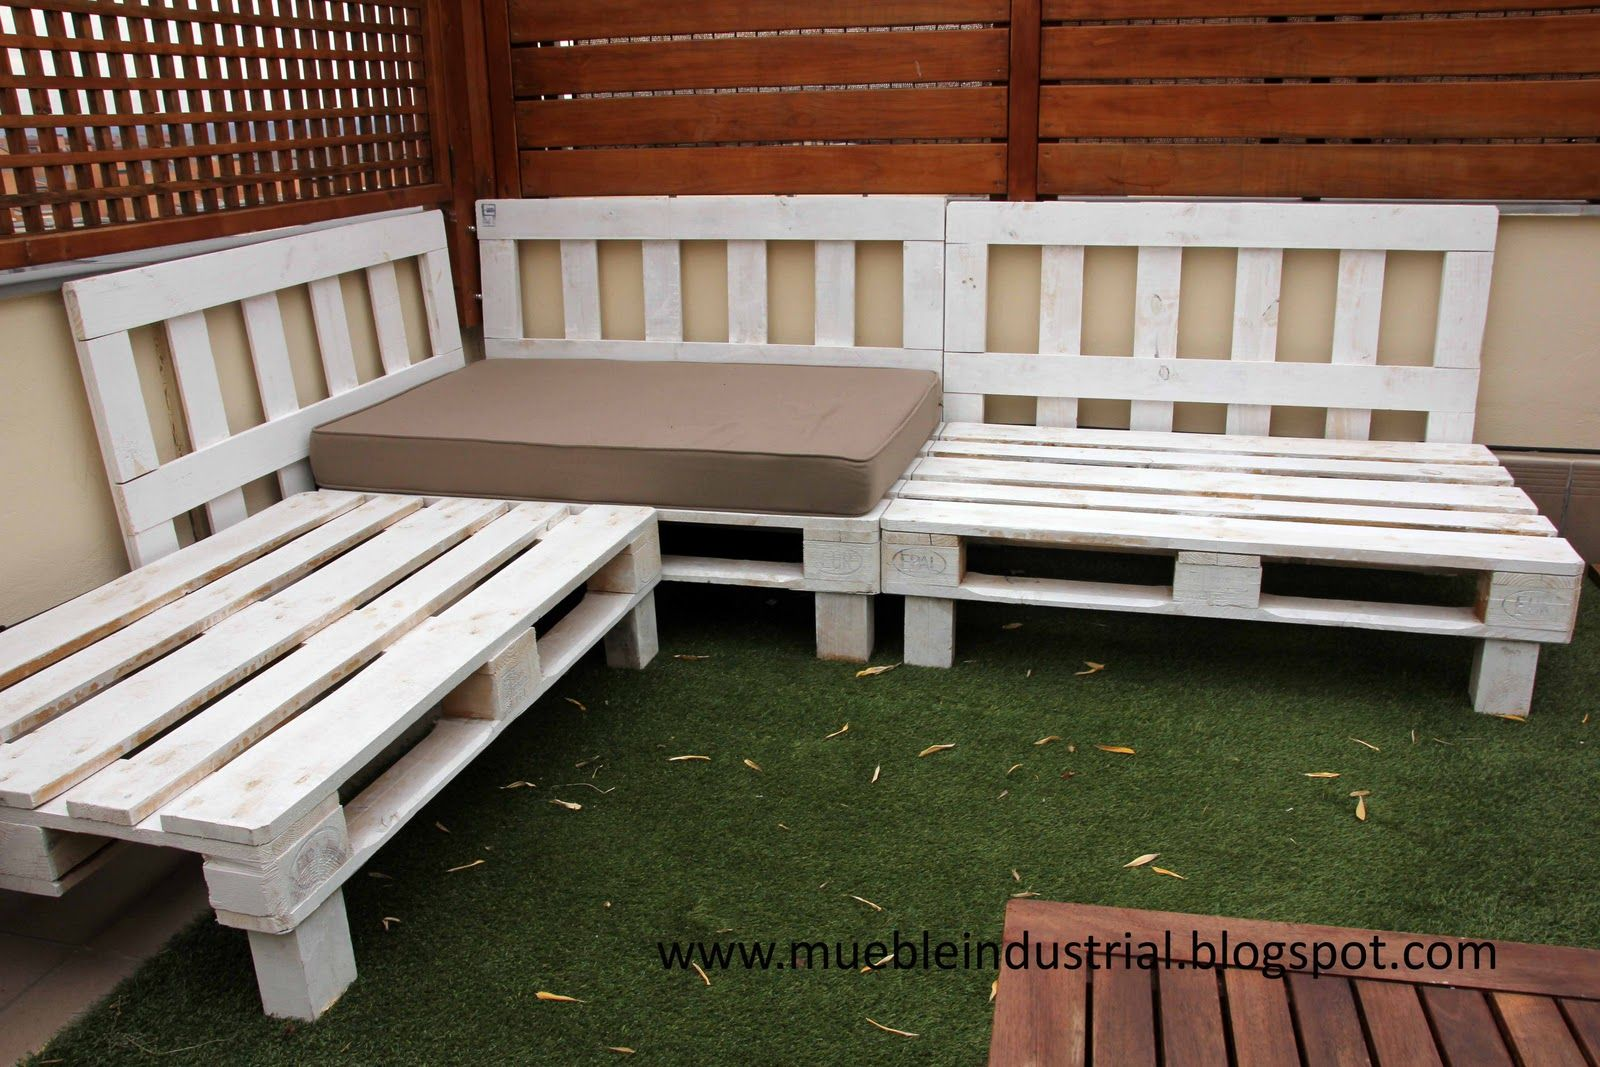 Hacer Sillones Con Palets Sofa Palet Terraza Terraza Palets Pallets Pallet Patio